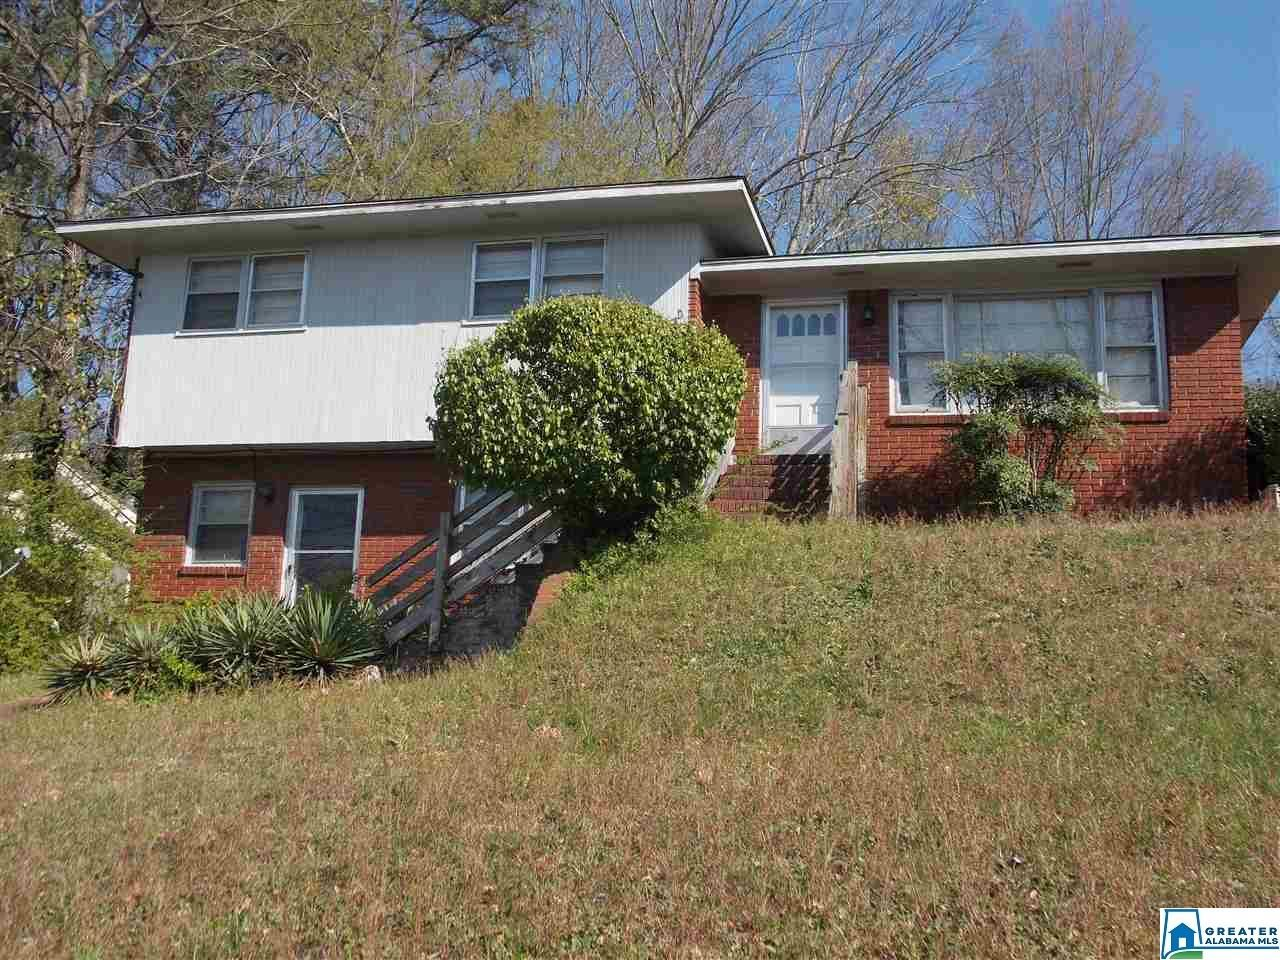 2901 MCCLELLAN BLVD, Anniston, AL 36201 - MLS#: 884297